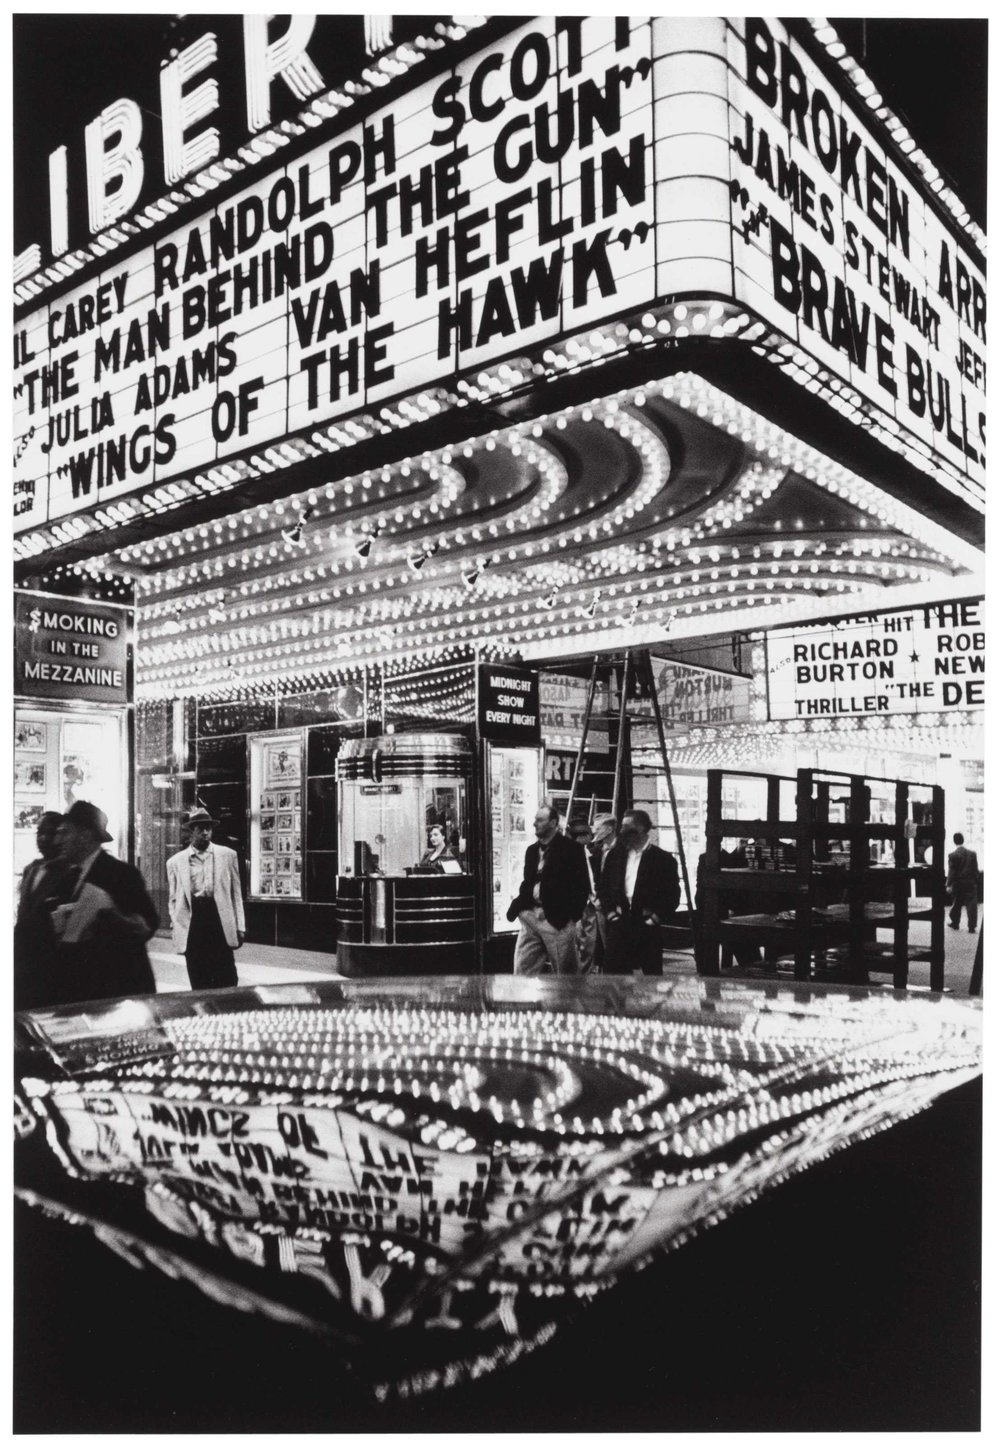 WILLIAM KLEIN WINGS OF THE HAWK AARON ROSE DOUBLE OR NOTHING